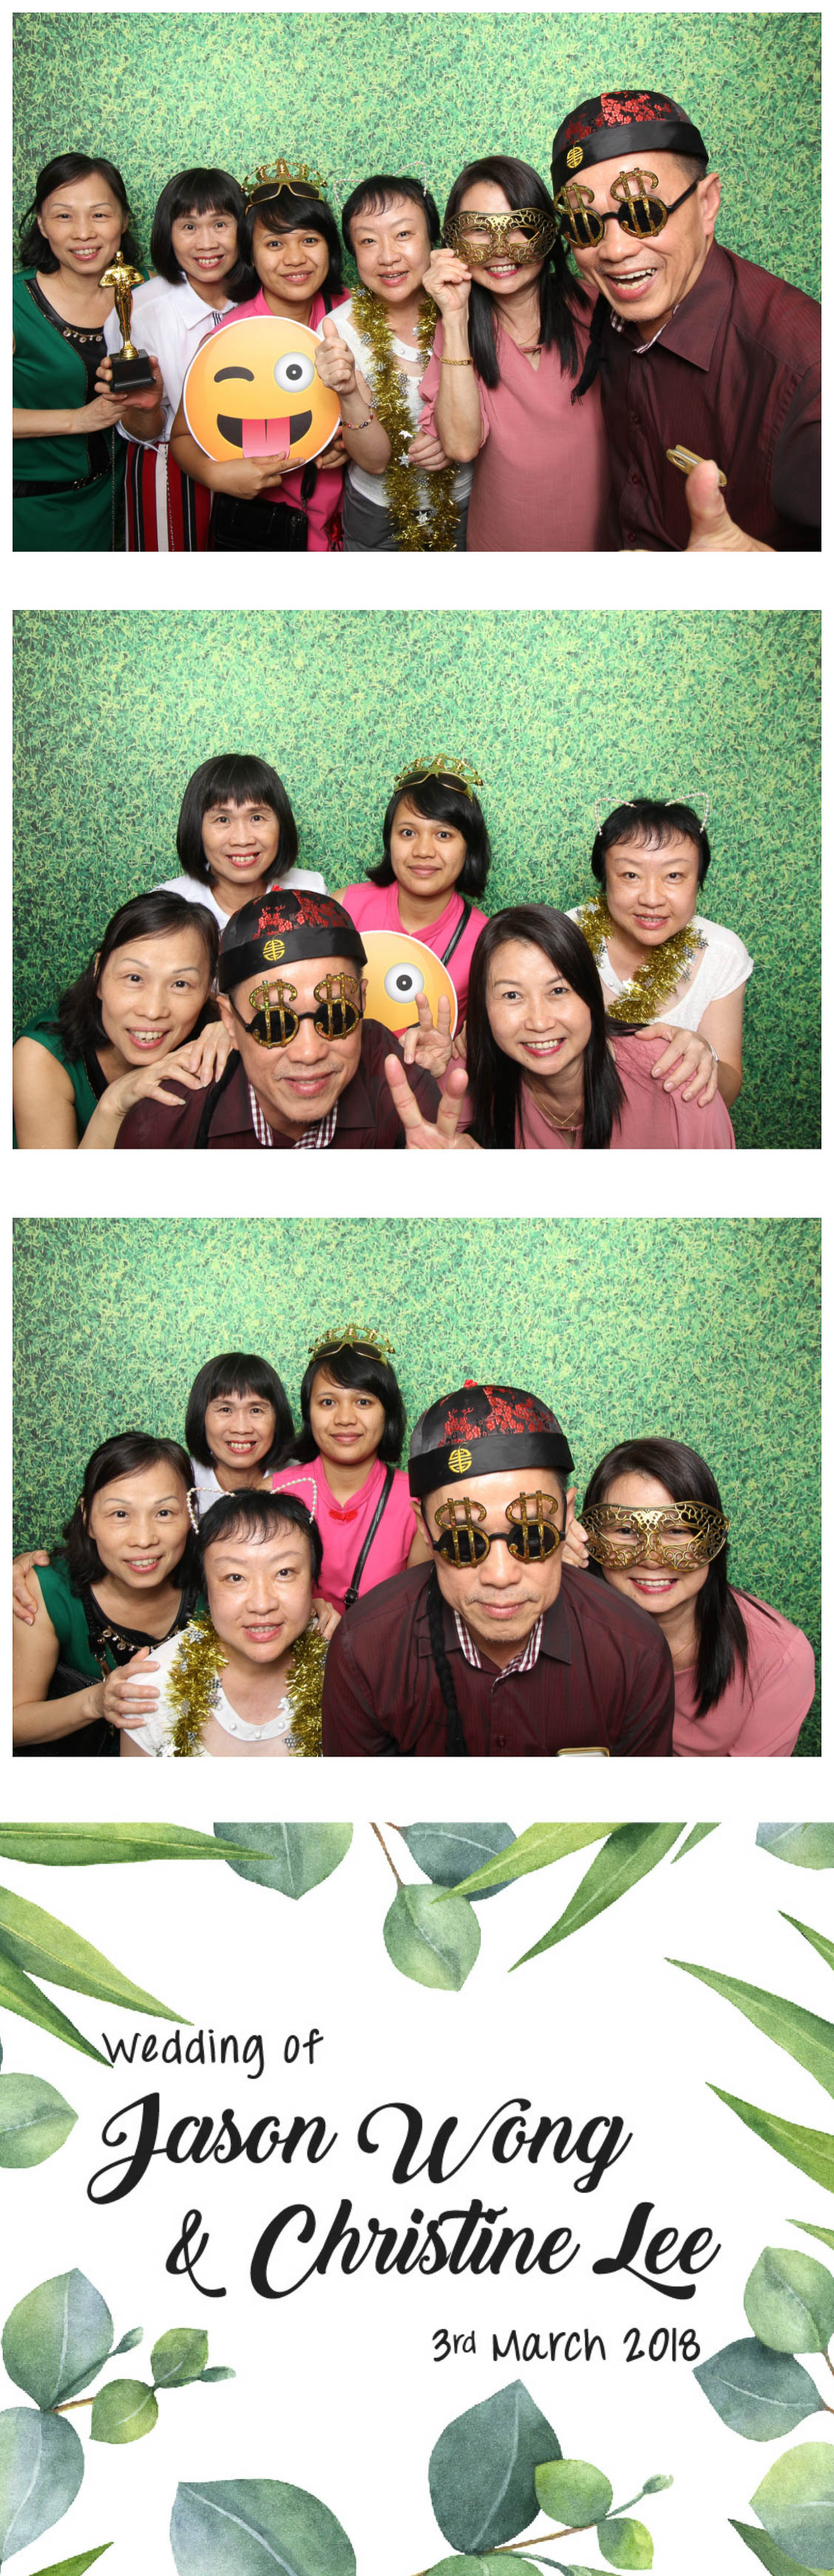 Photobooth 0302-39